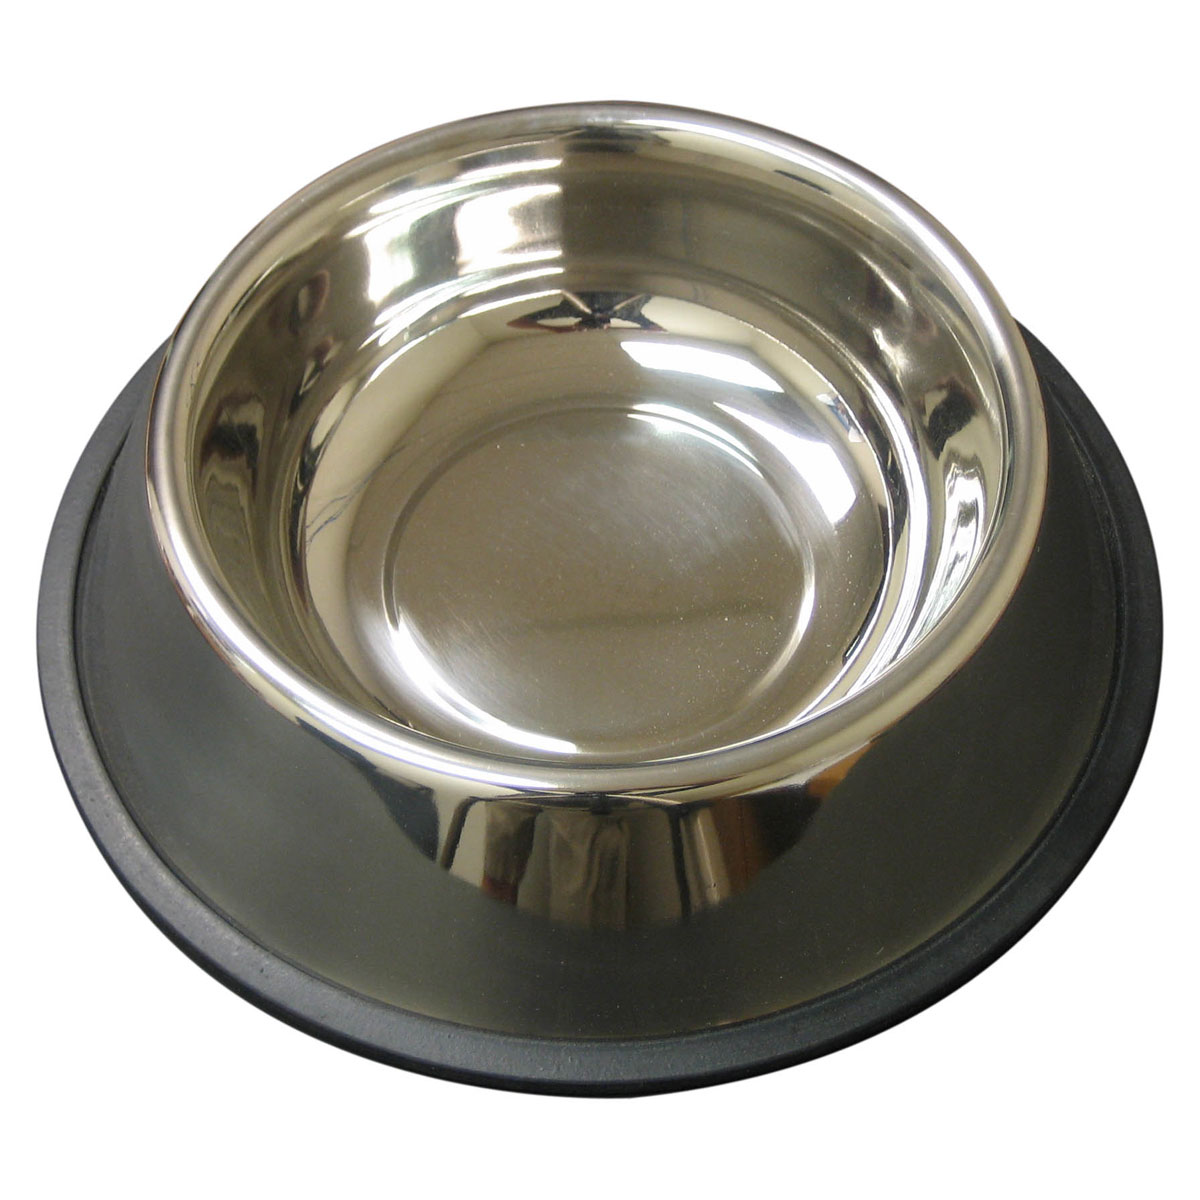 QT Dog - Non-Tip Anti- Skid SS Bowl